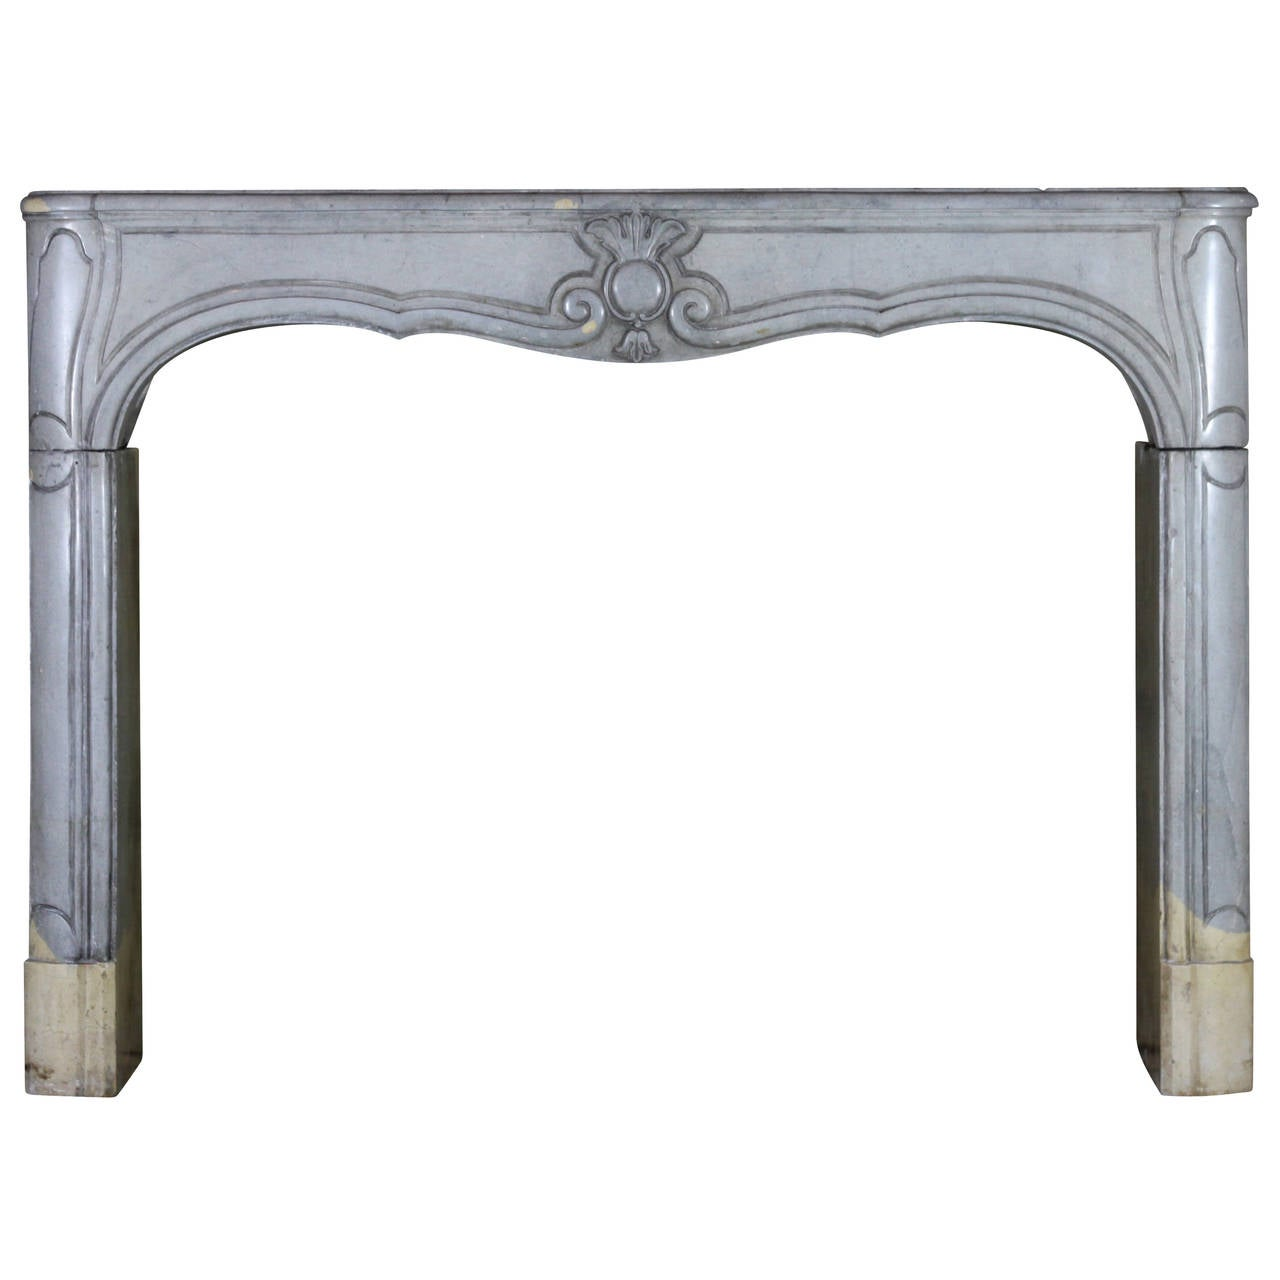 18th Century Louis XIV Period antique fireplace Mantel One of a Pair, Bicolore